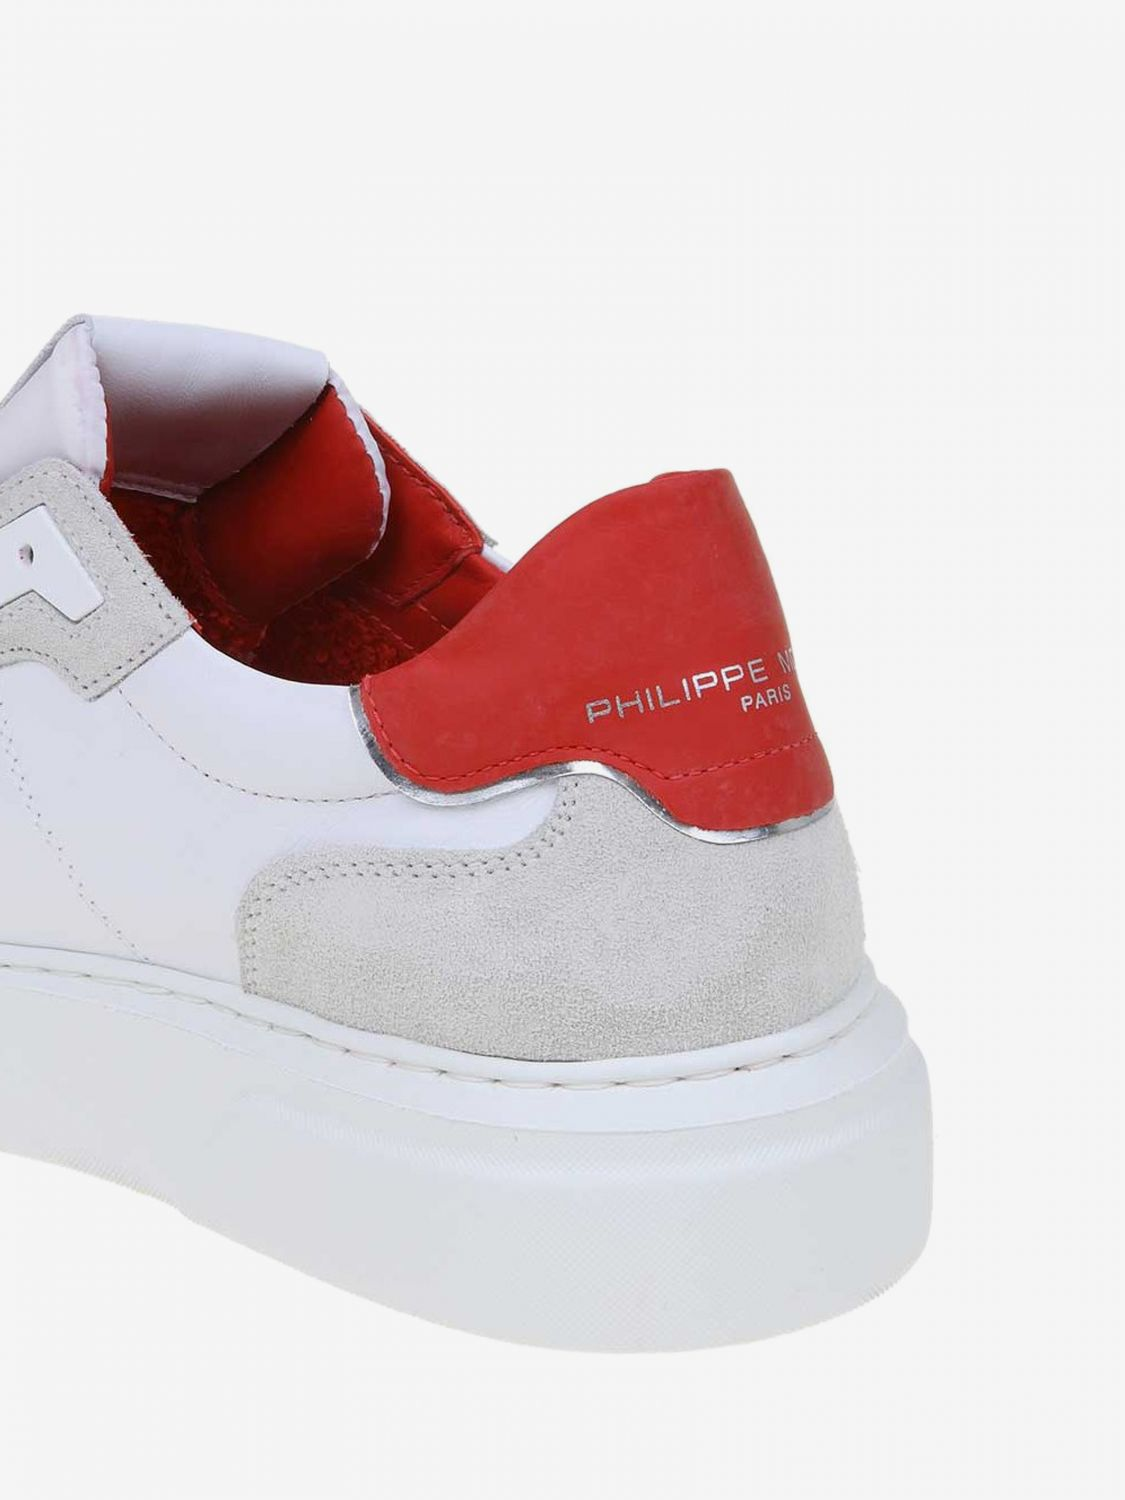 Trainers men Philippe Model red 4